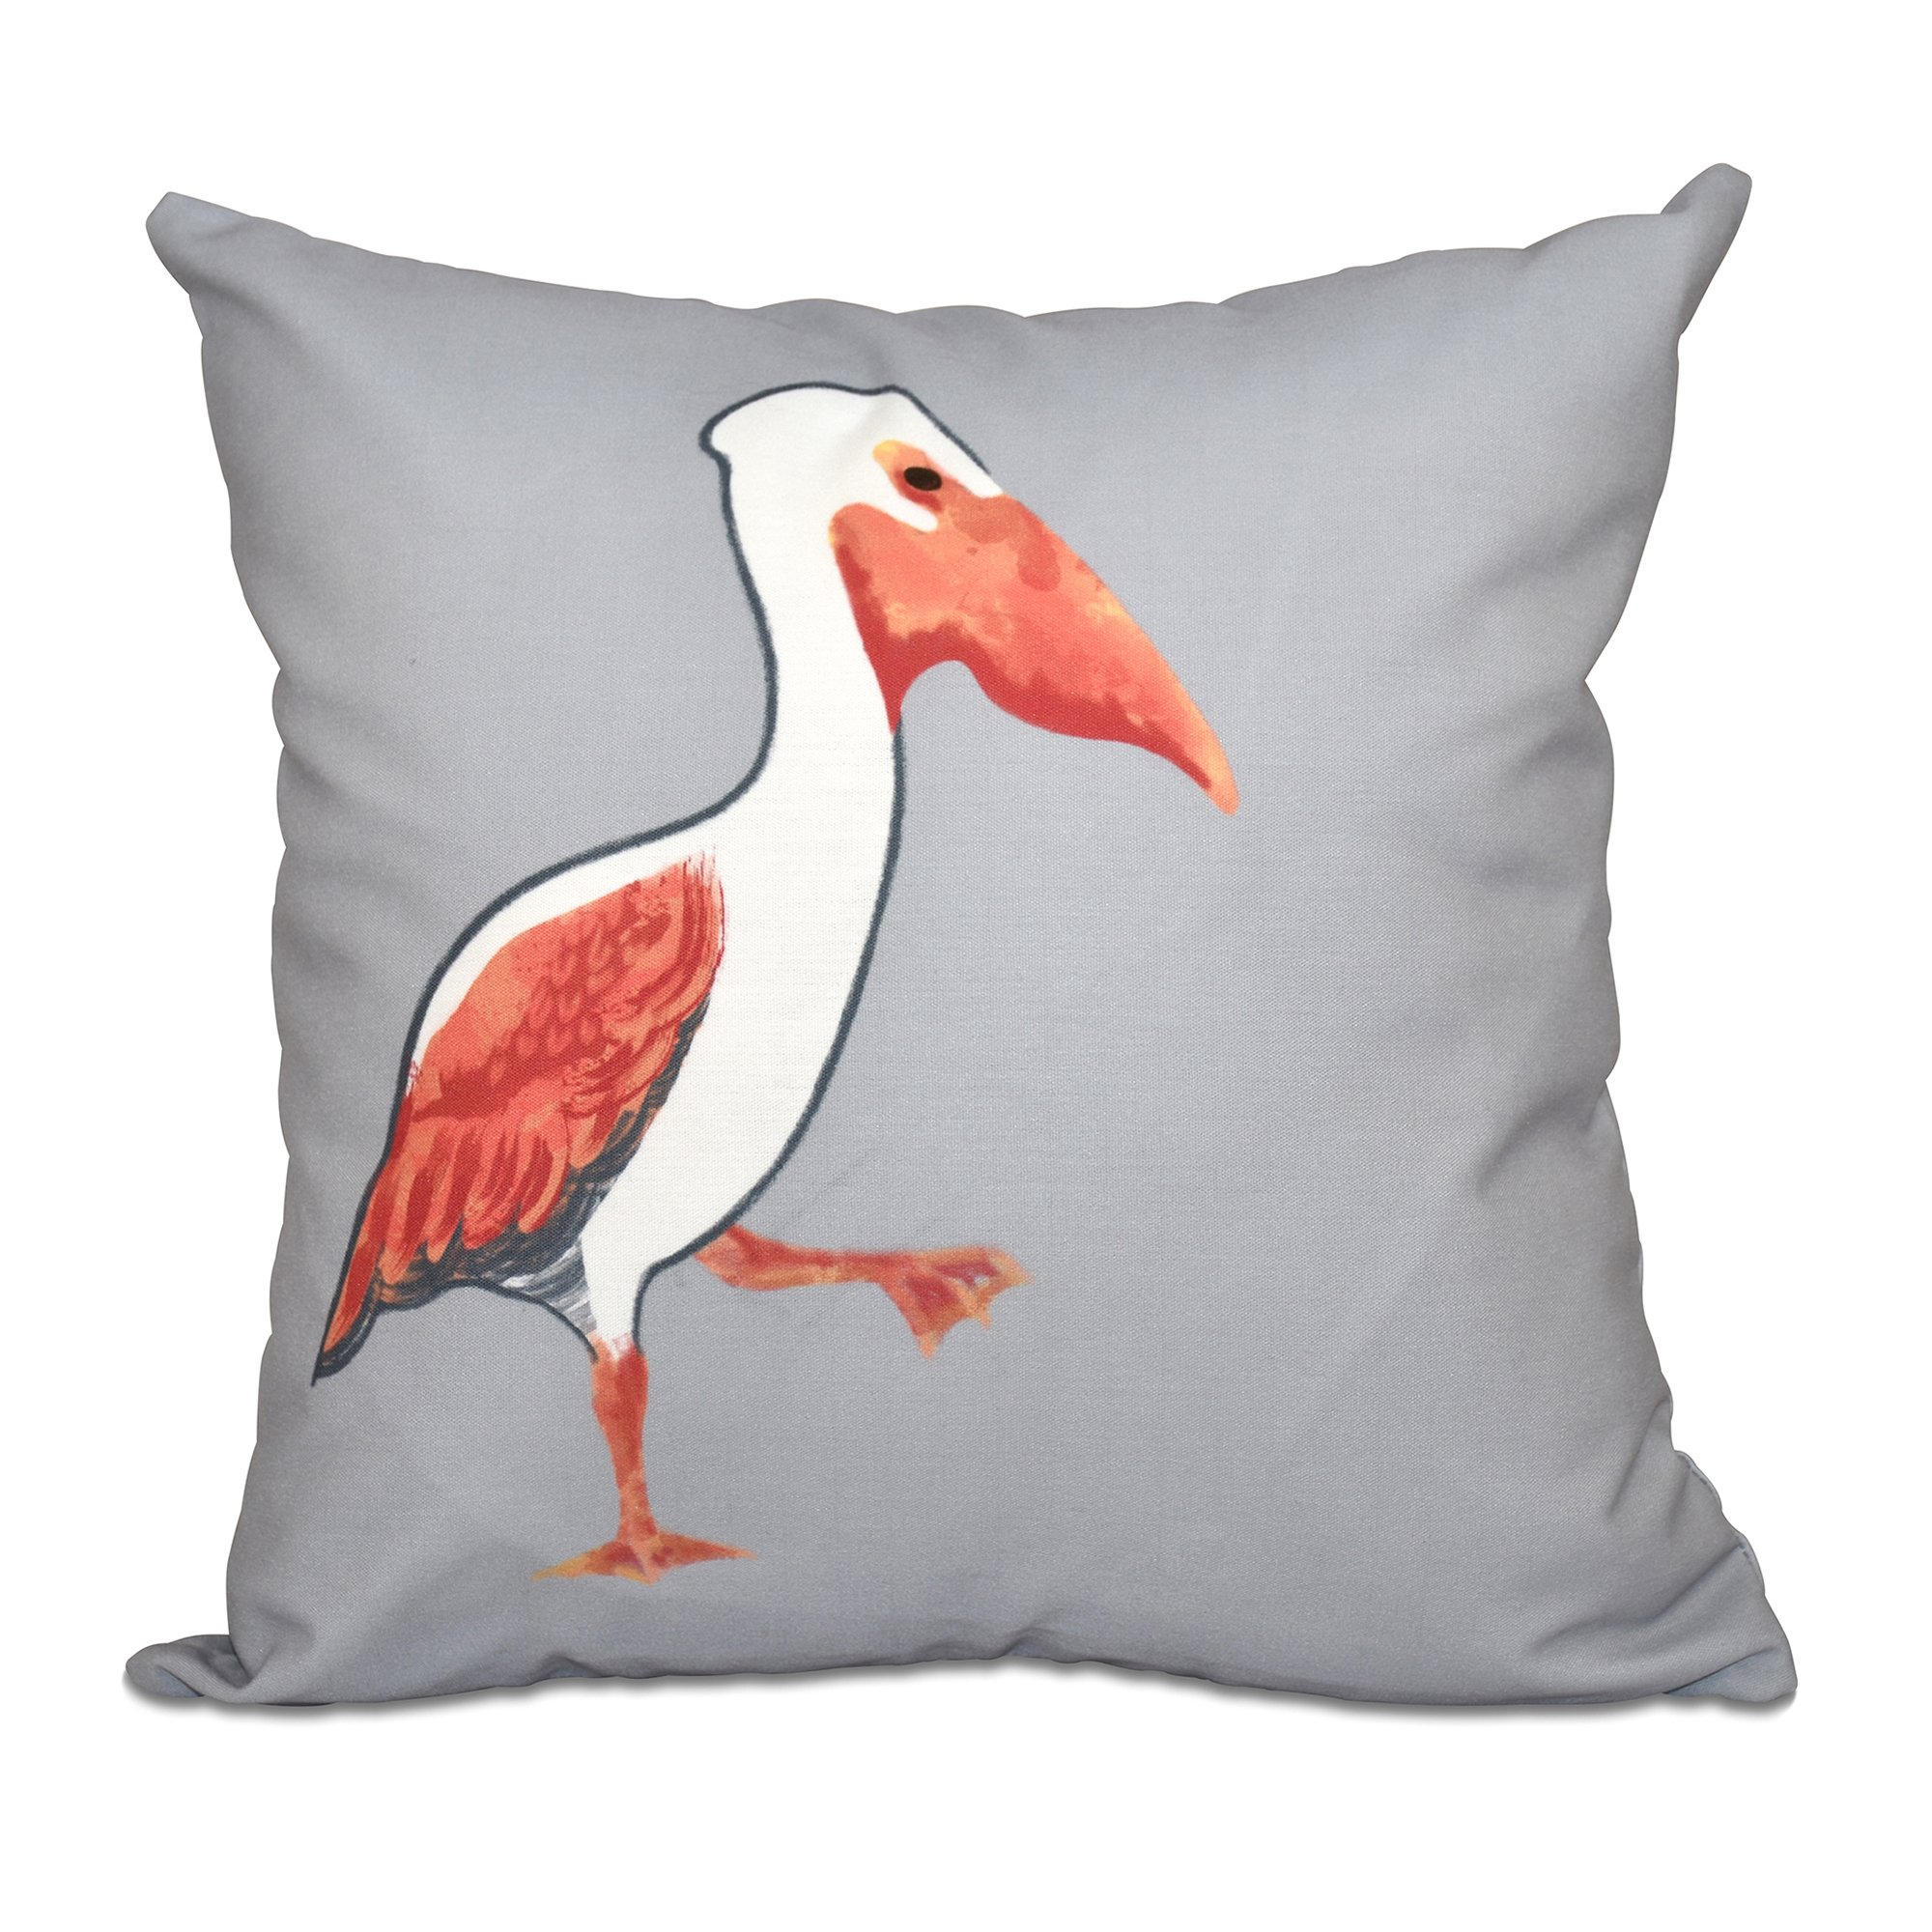 E by design 16 x 16 inch, Pelican March, Animal Print Pillow, Gray